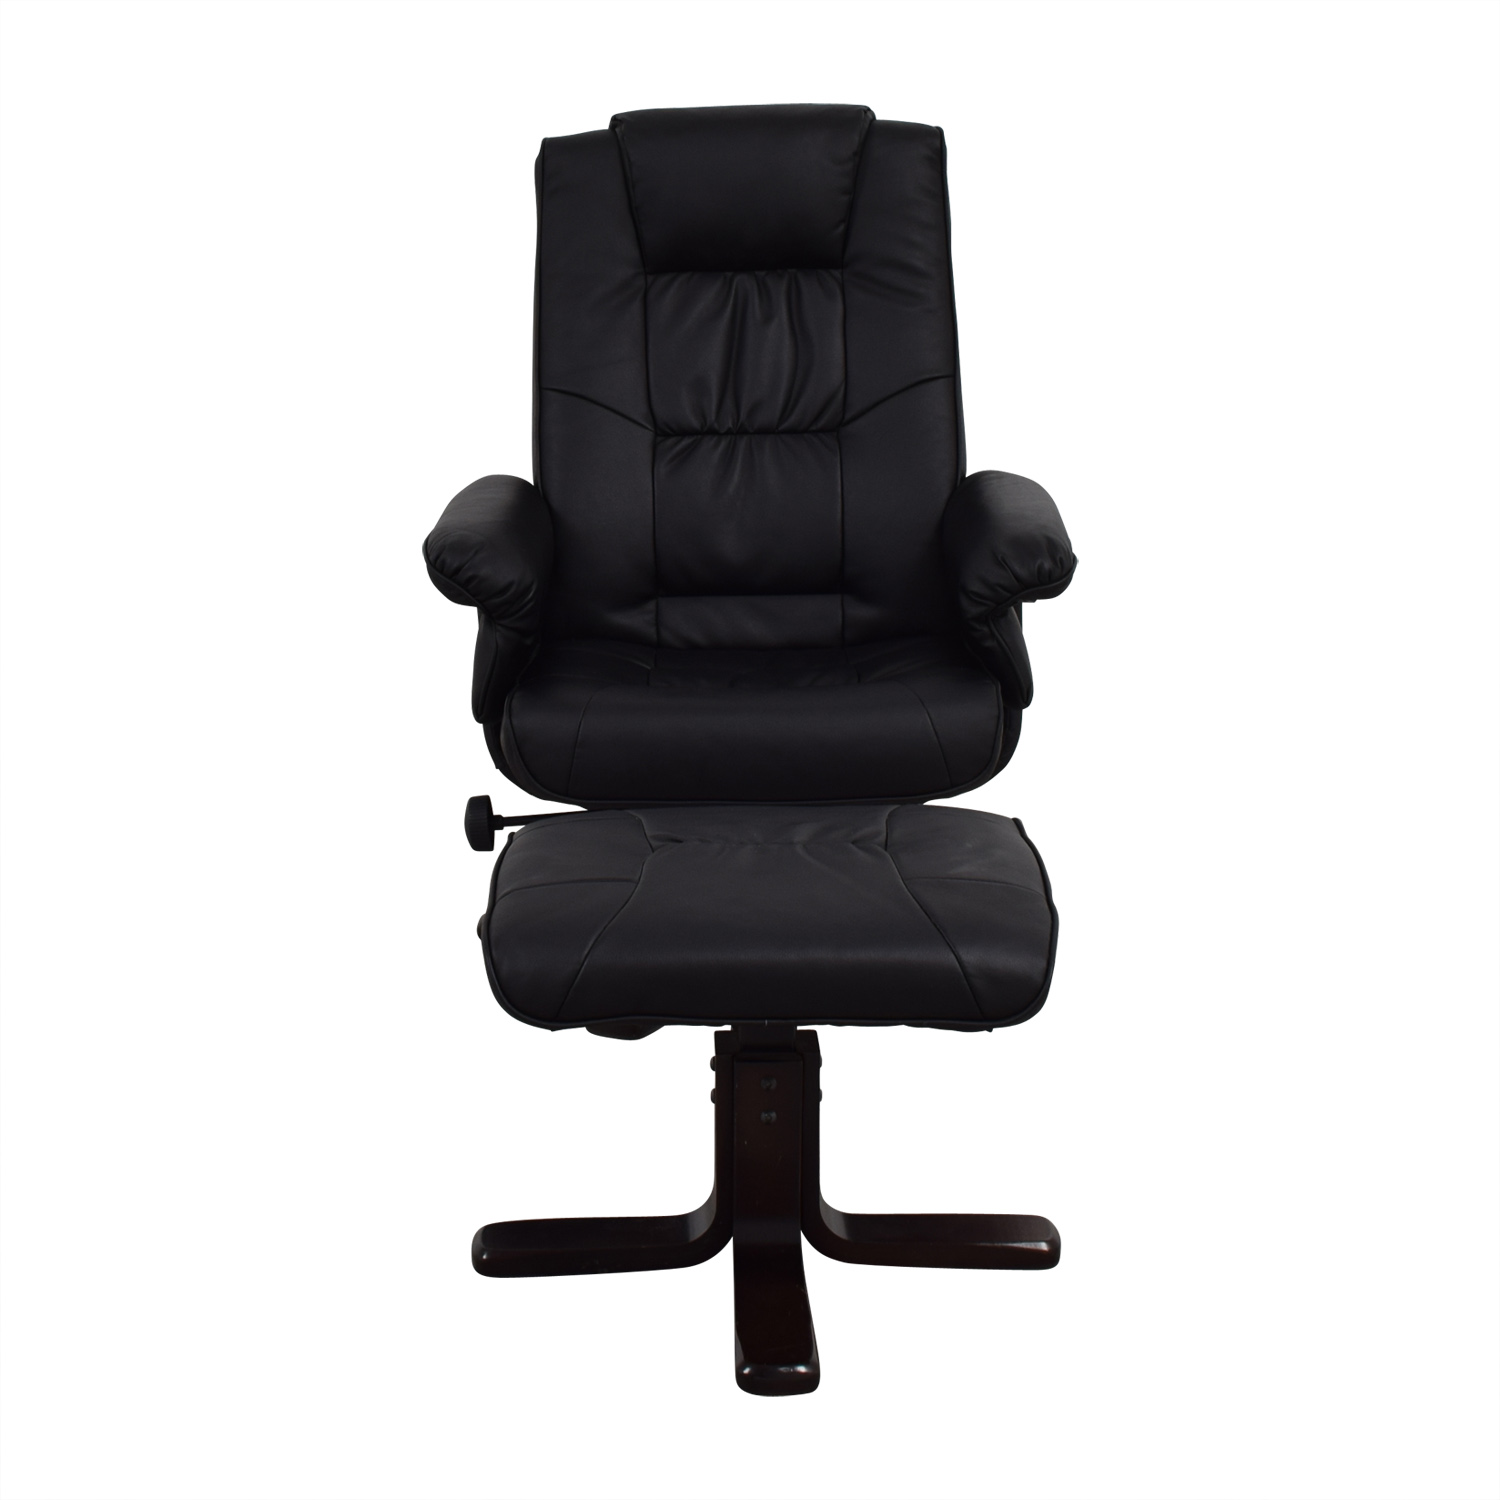 Coaster Black Reclining Chair and Foot Stool Coaster